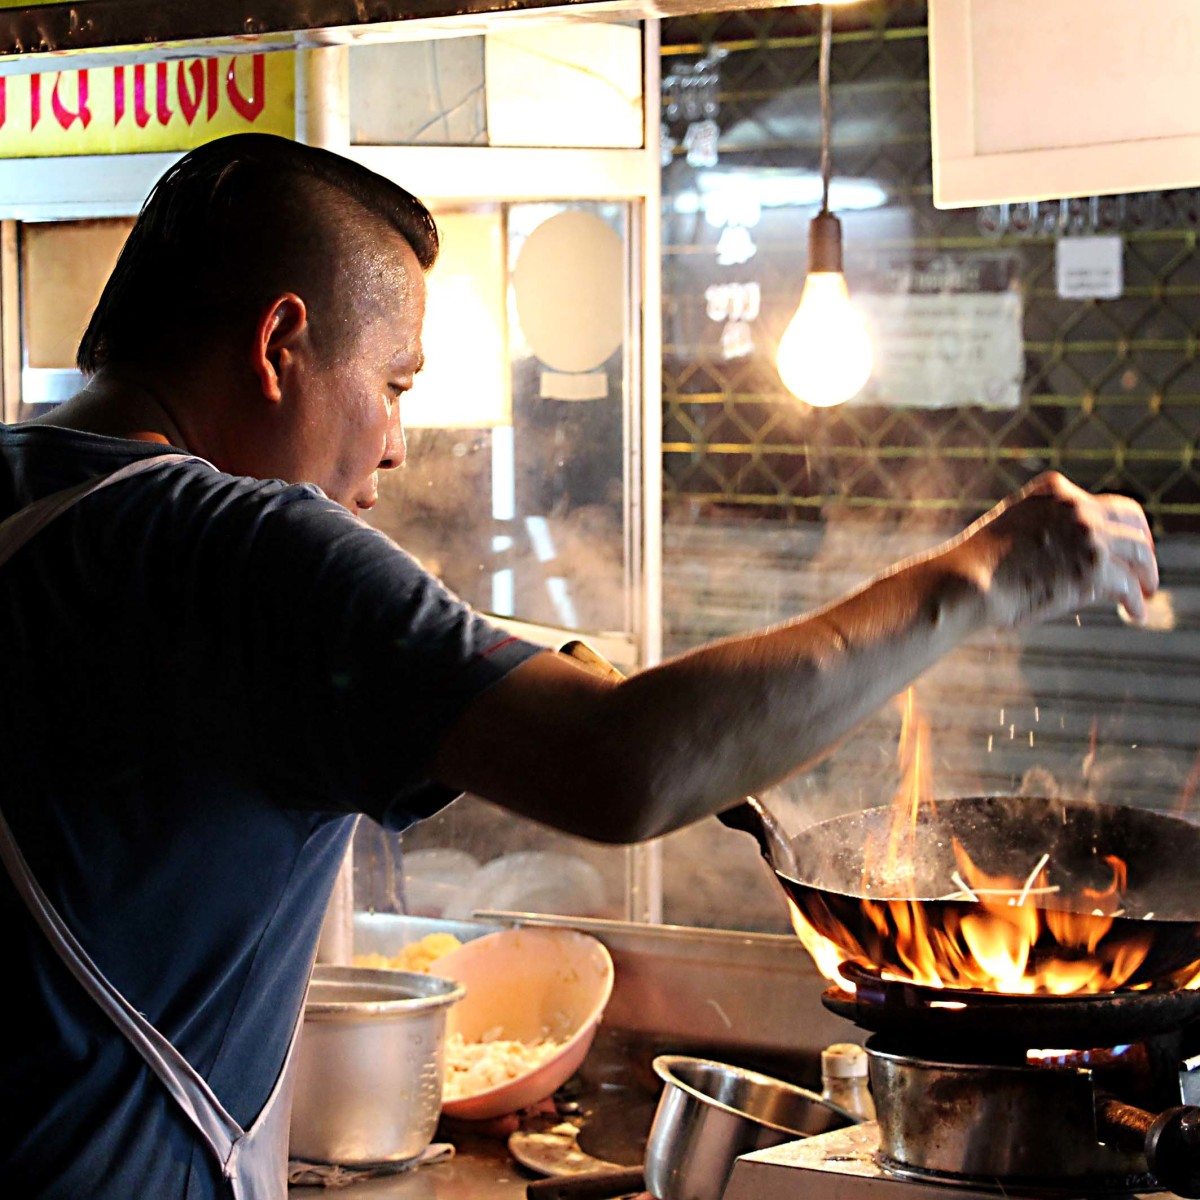 Cooking over a wok in a Bangkok night market. I wonder how many of these stalls go up in flames? Probably not many - the chefs know what they're doing